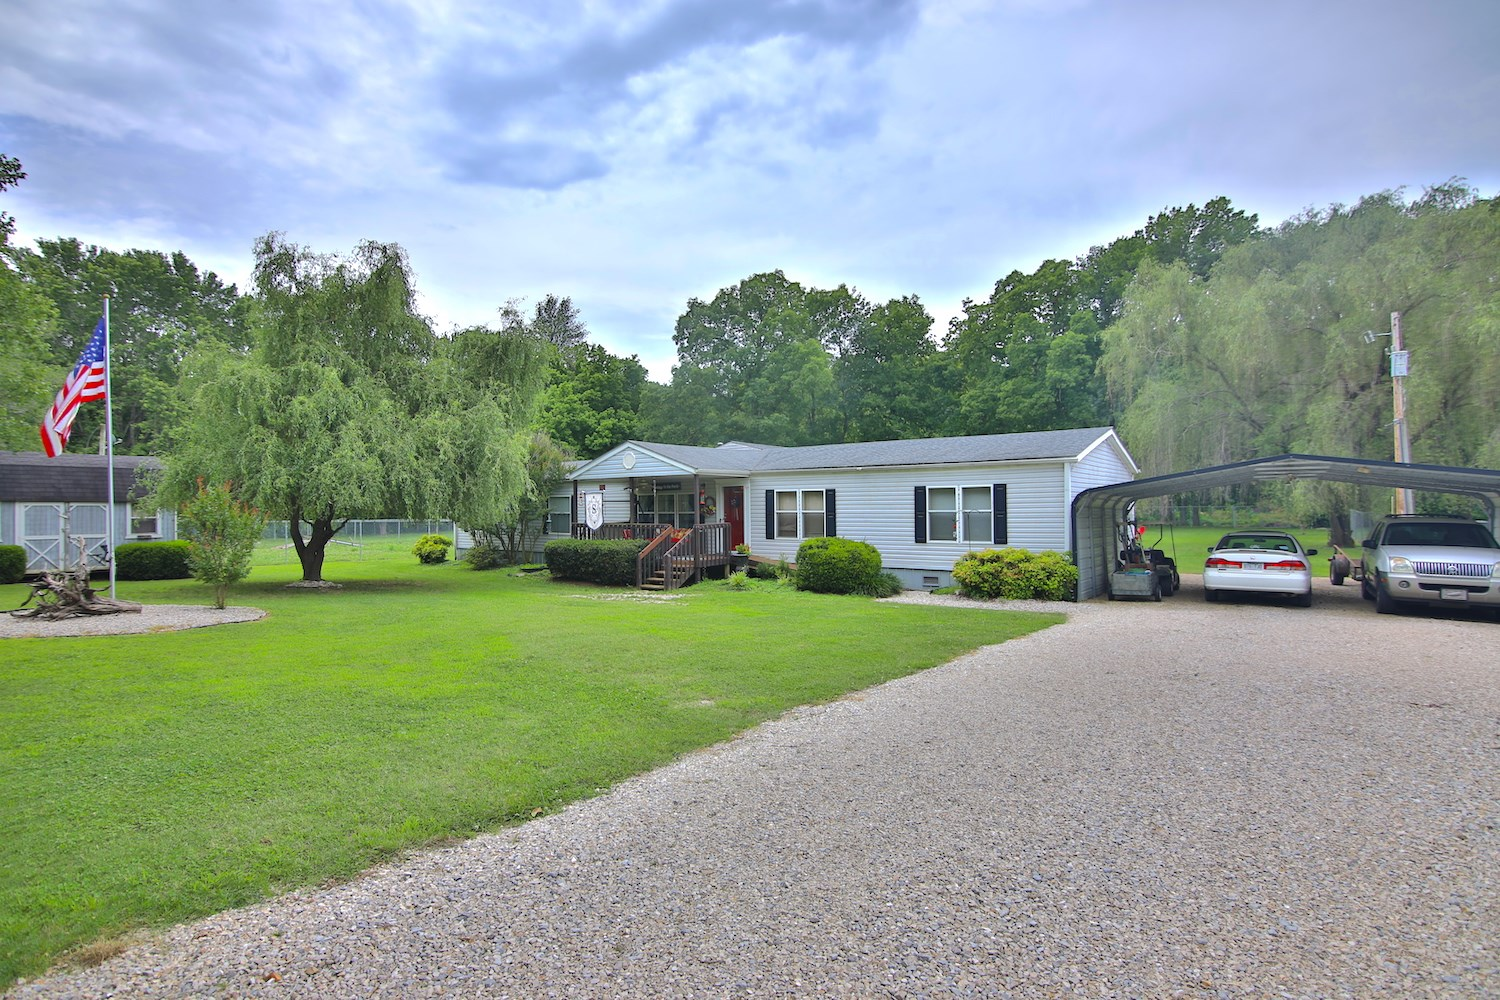 Spring River Home for Sale in the Ozarks